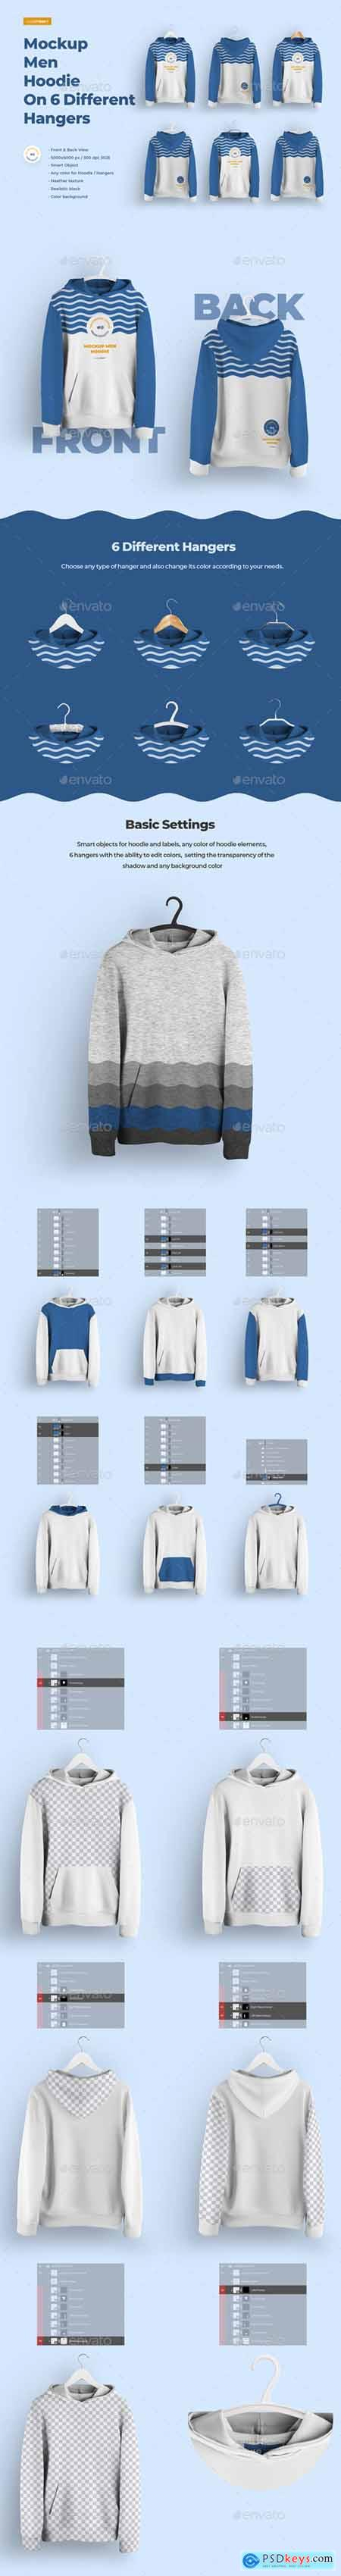 Front and Back Men Hoodie Mockup On 6 Different Hangers 28923565